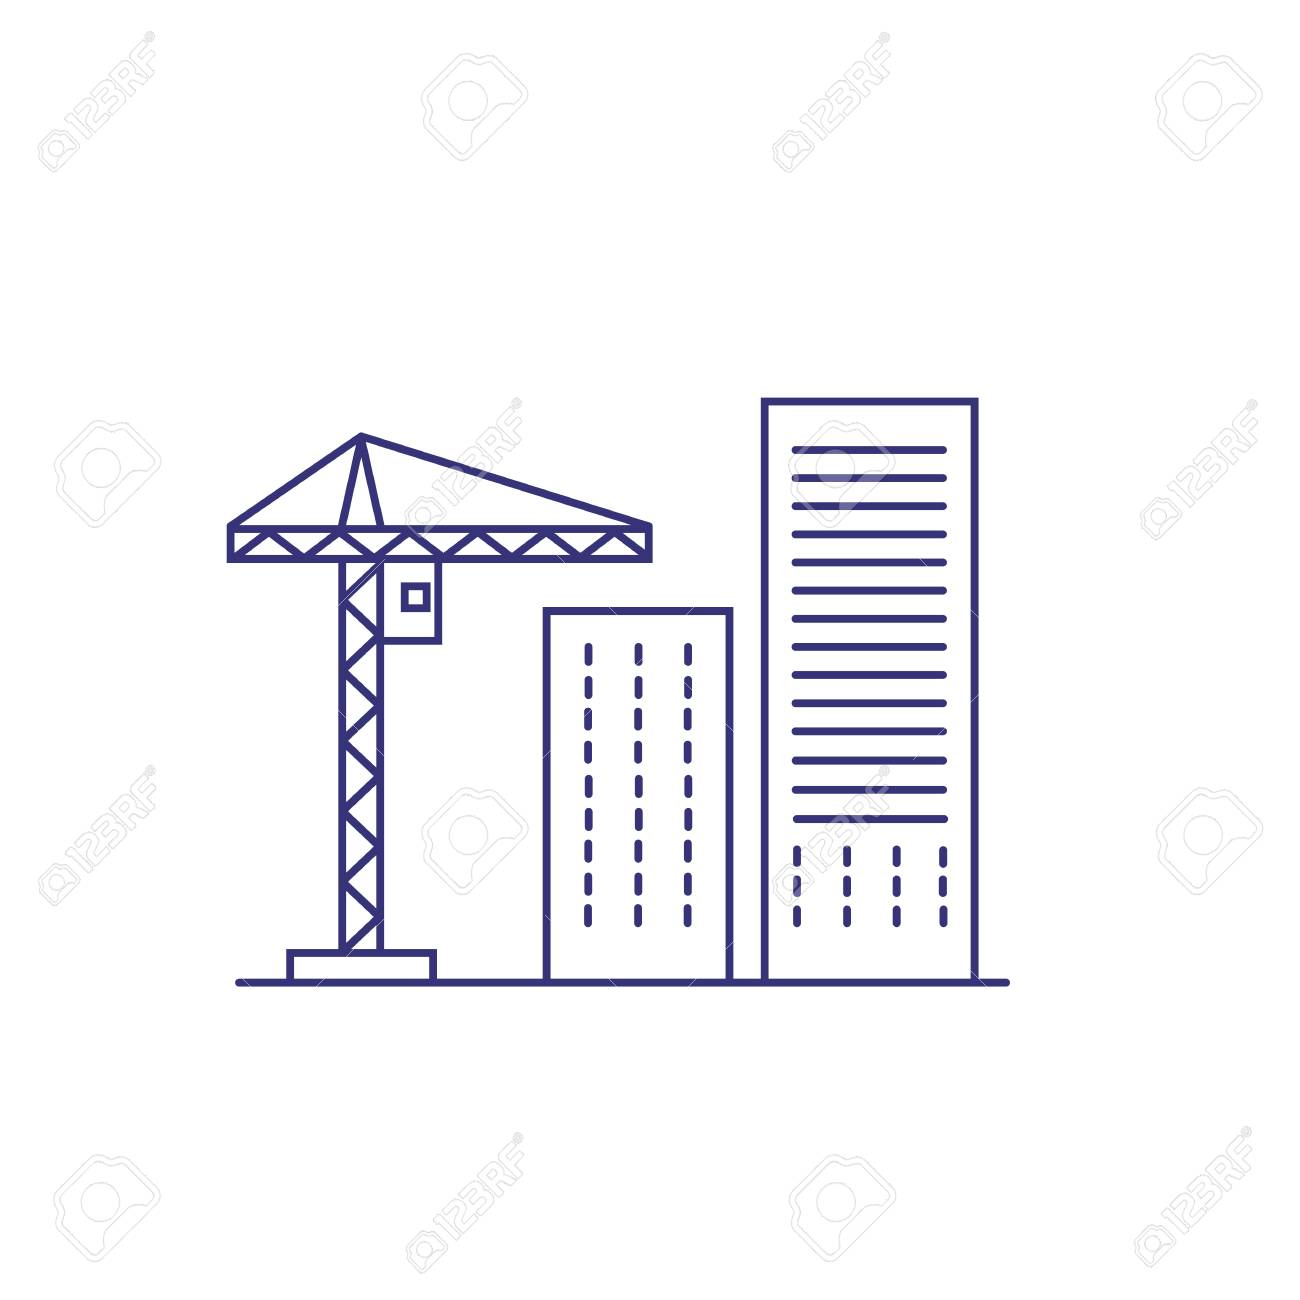 hight resolution of construction crane and buildings line icon construction site building industry housing development